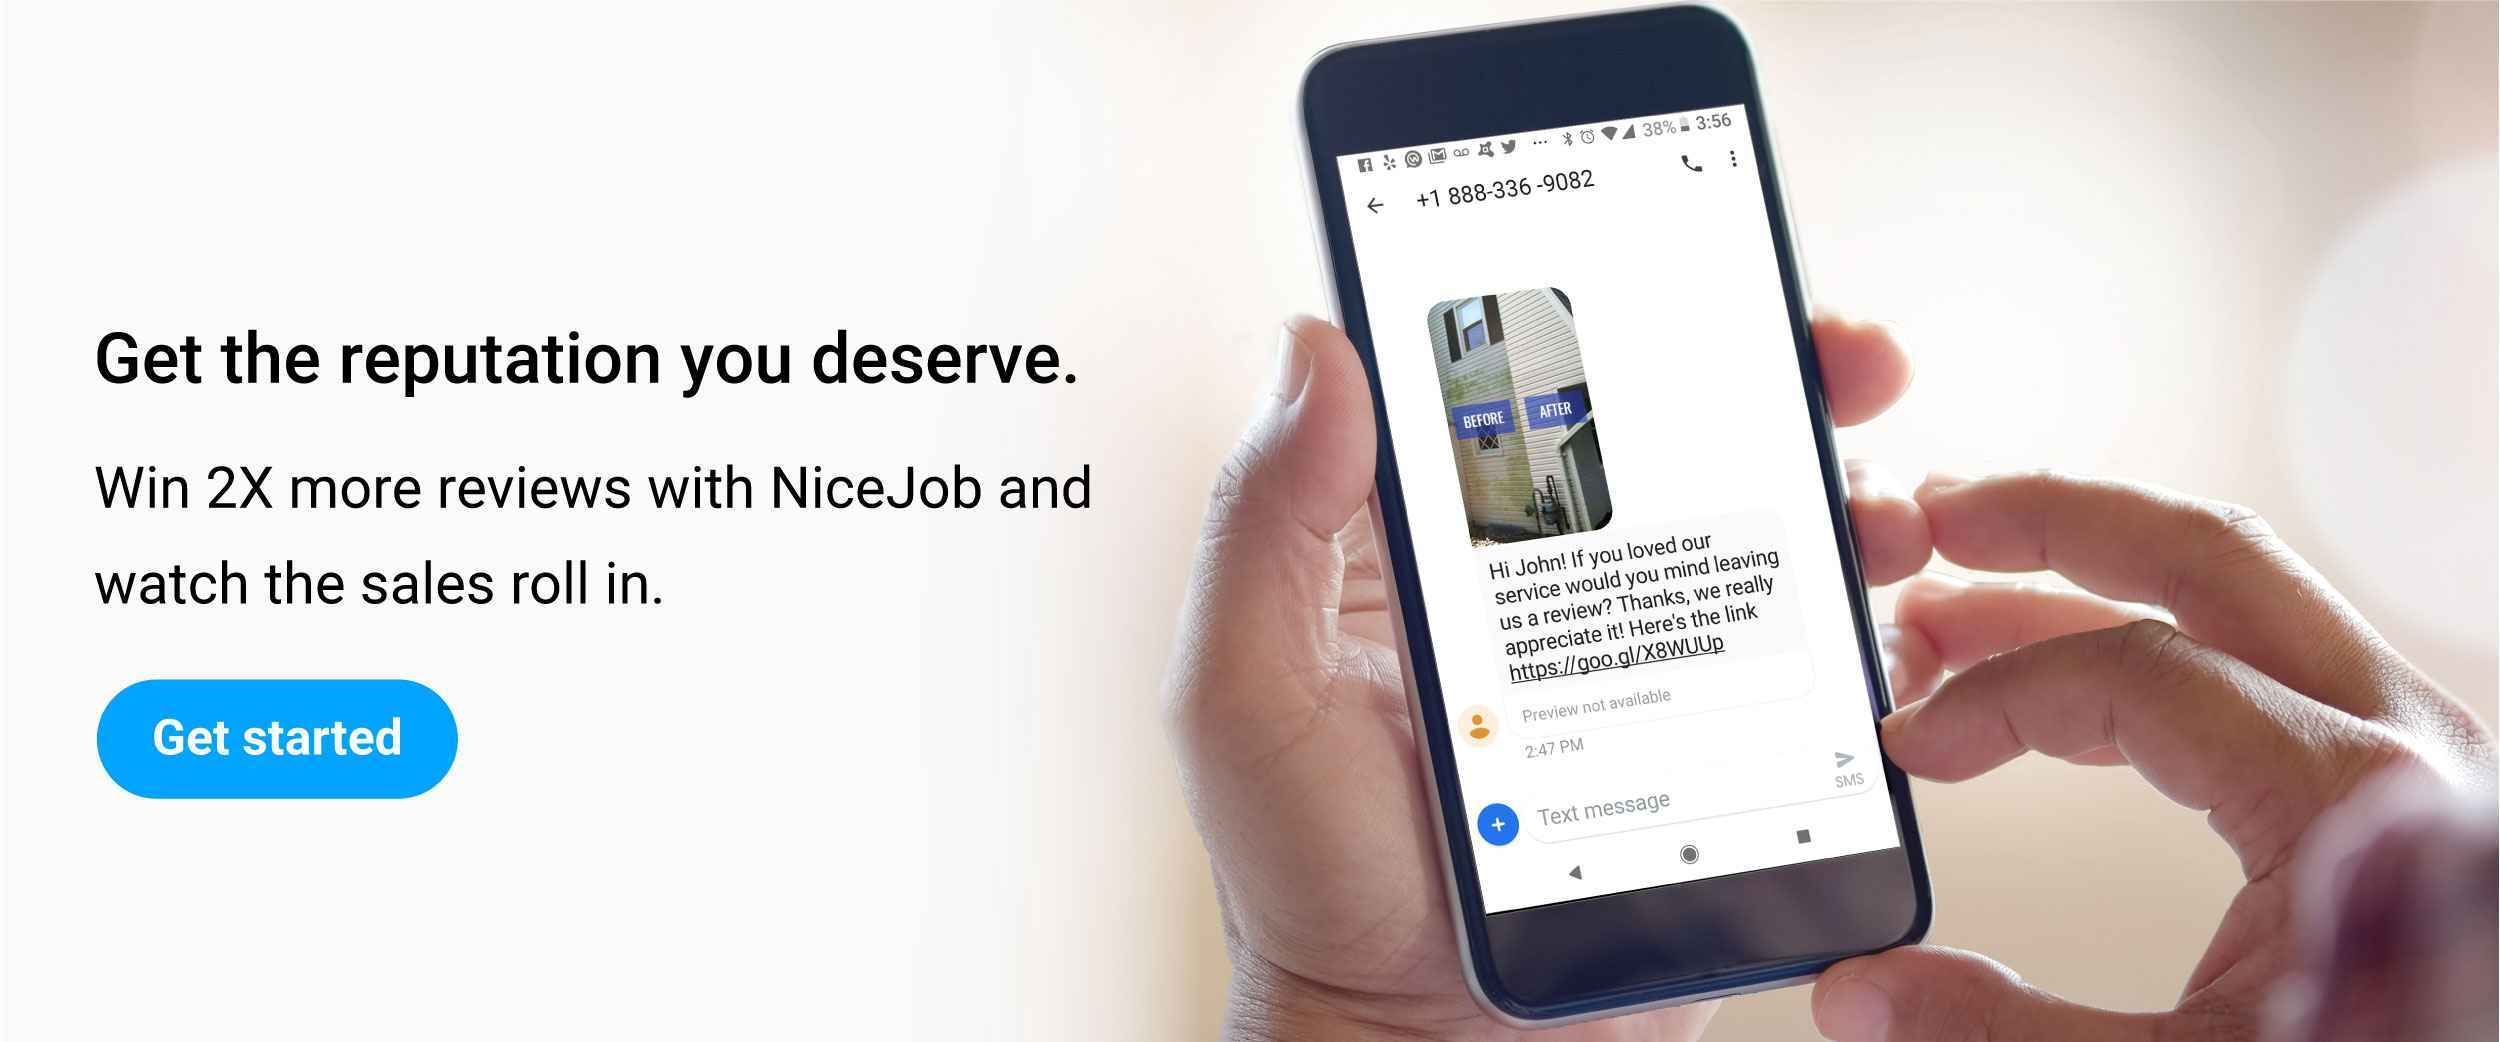 How to get customer reviews with NiceJob's reputation marketing software.